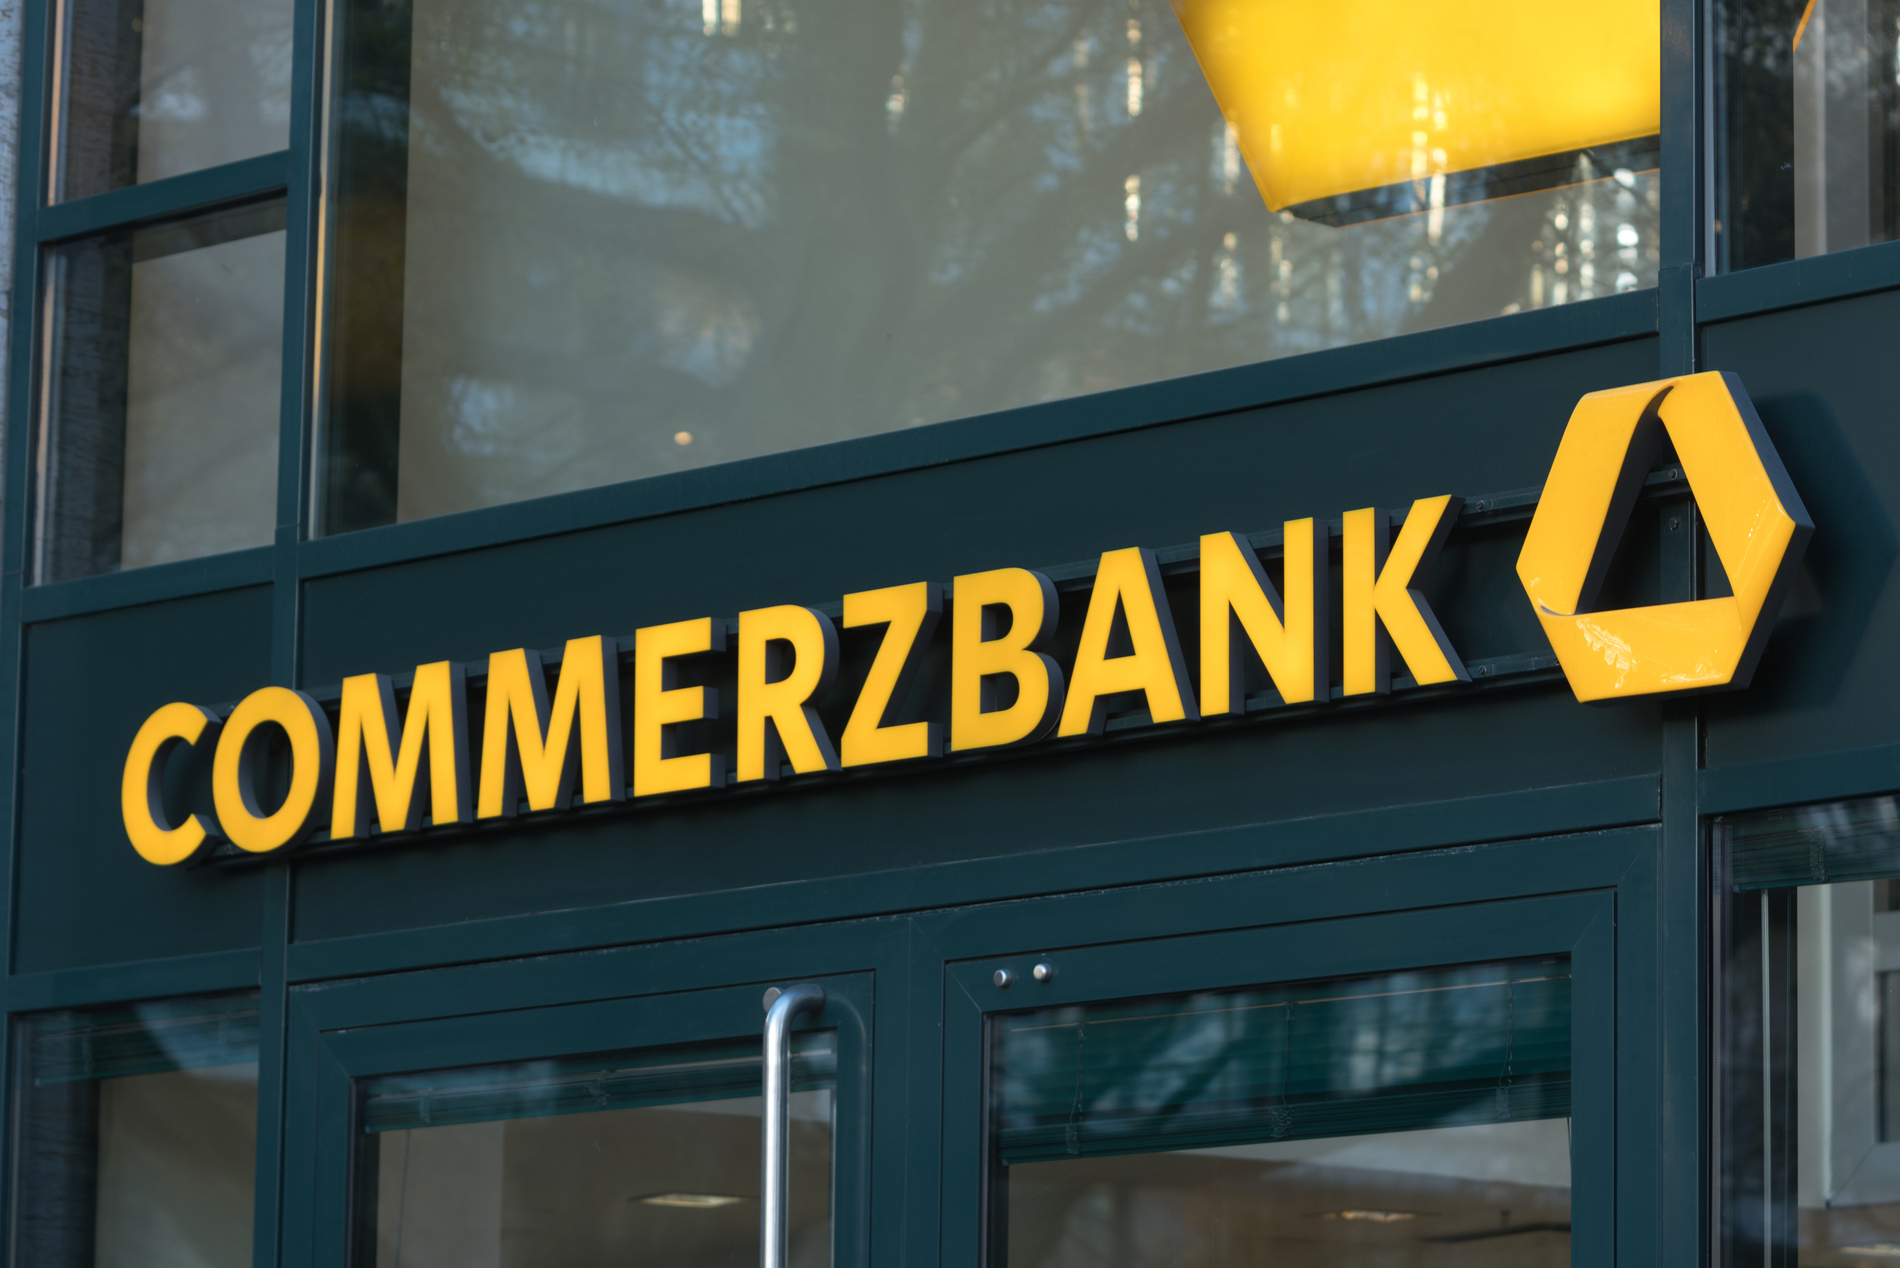 Commerzbank Tests Blockchain for Managing Corporate Supply Chains